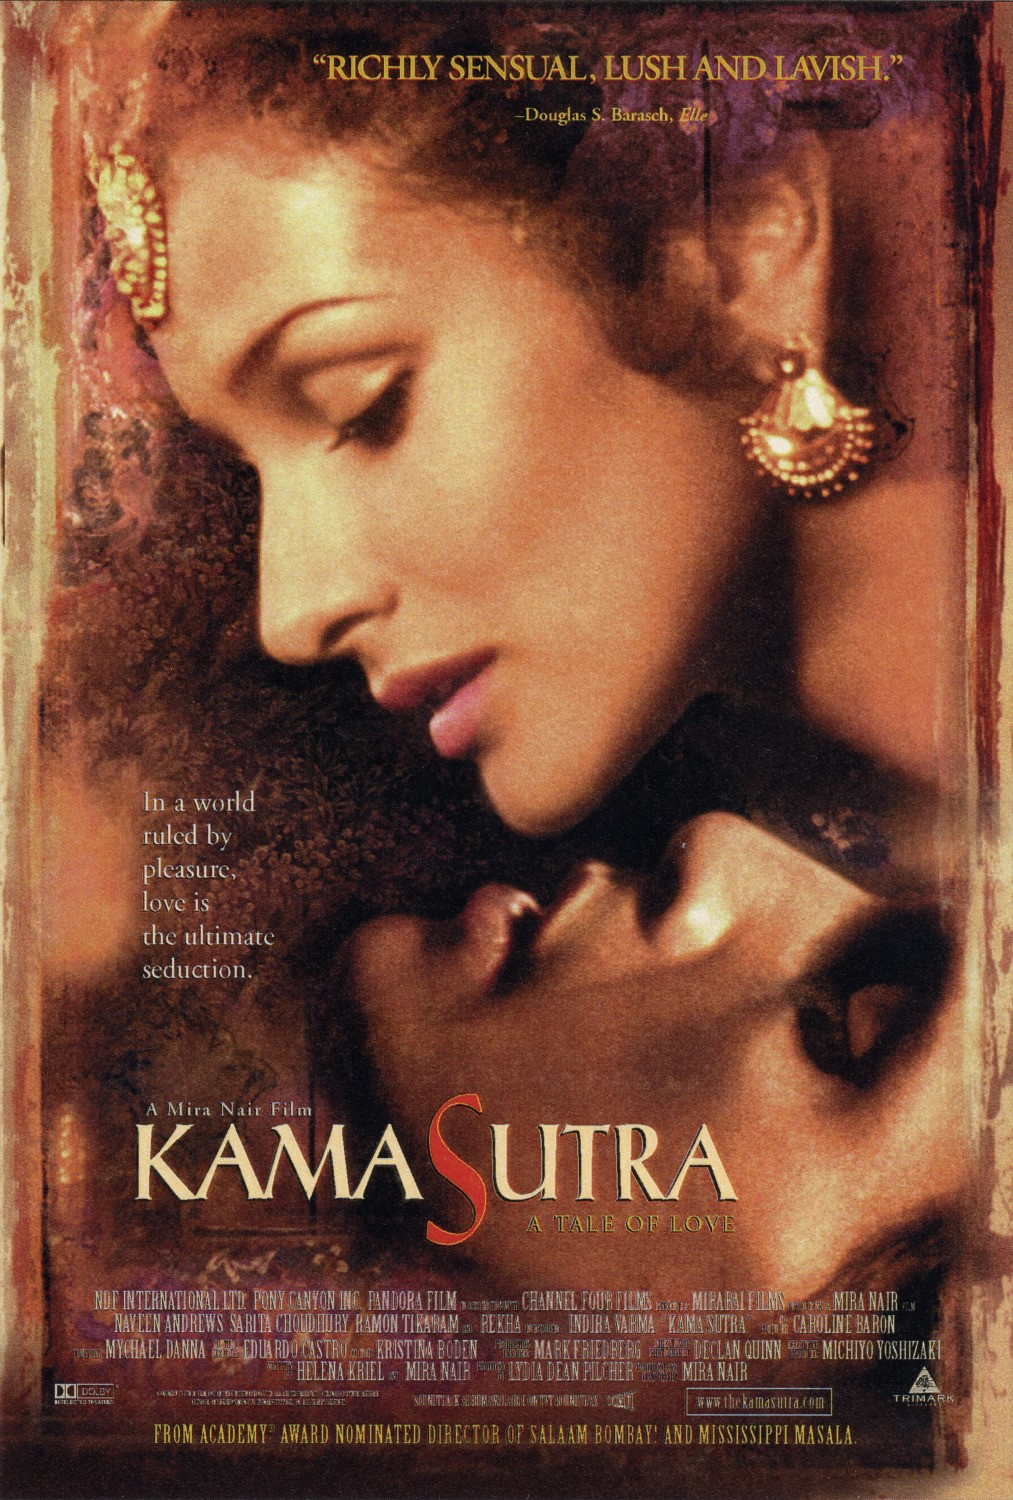 Kama Sutra A Tale of Love 1996 Hindi Dubbed